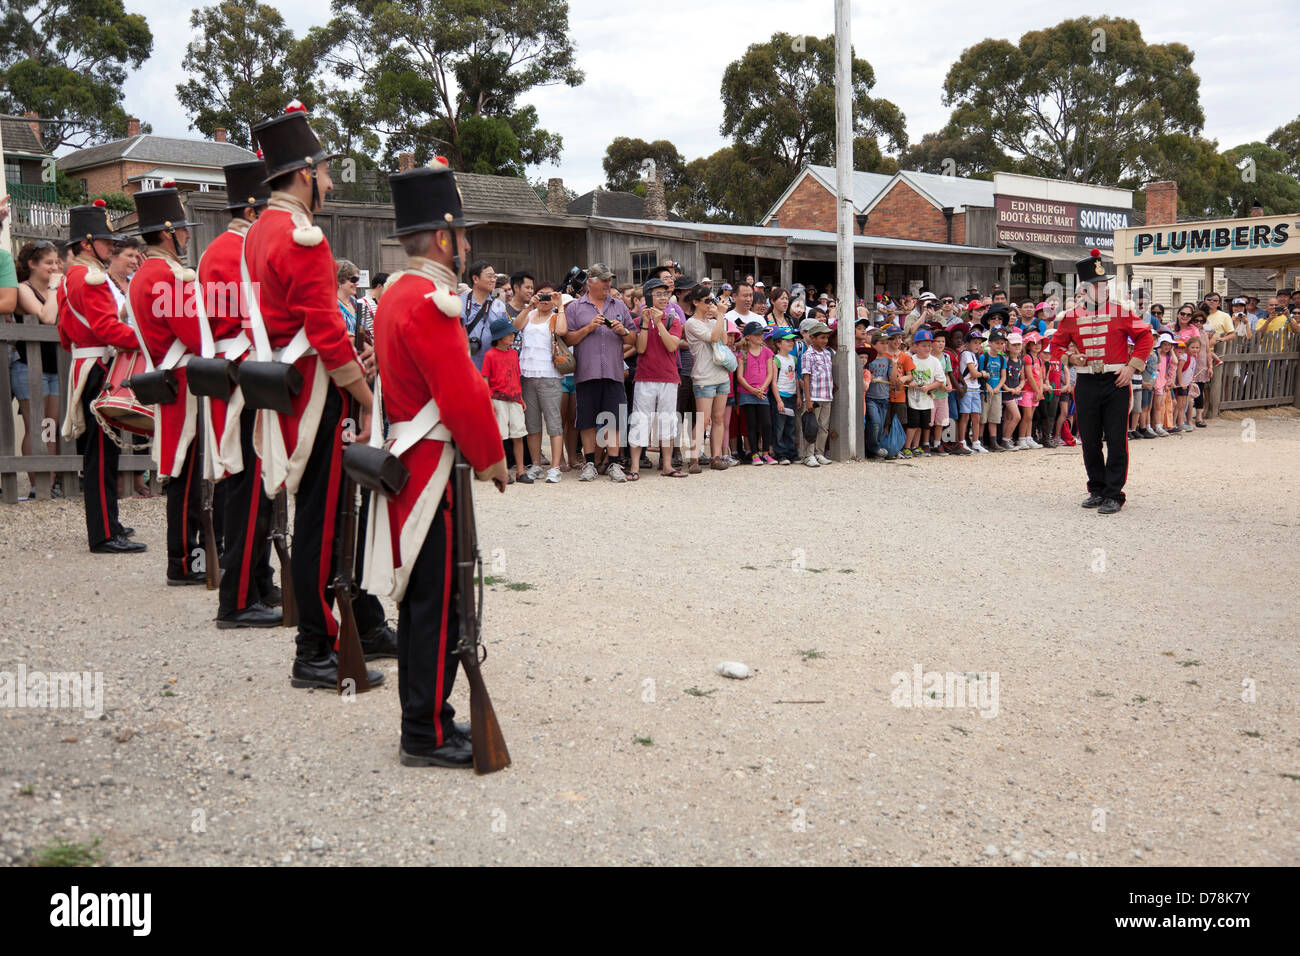 A patrol of British Redcoat soldiers in Sovereign Hill's former gold mining site in Ballarat, Australia - Stock Image